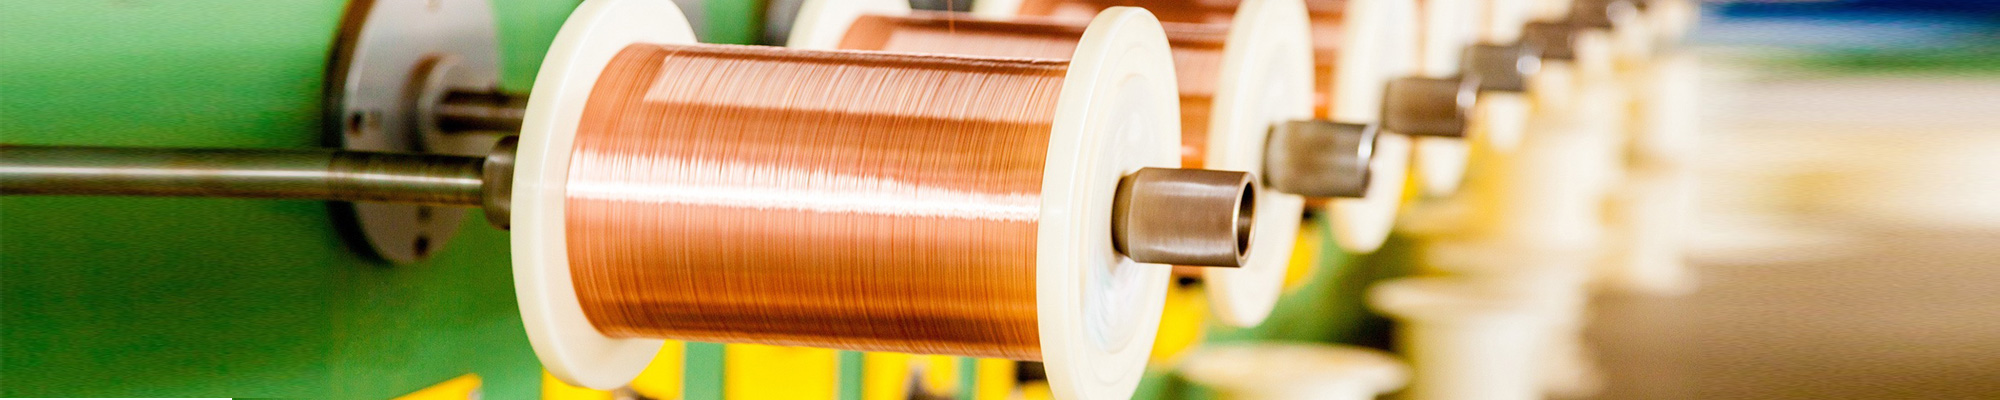 Jainam Cables India Pvt Ltd The Leading And Wire Fr House Wiring Cable Exporter Manufacturer Copper Drawing Plant In